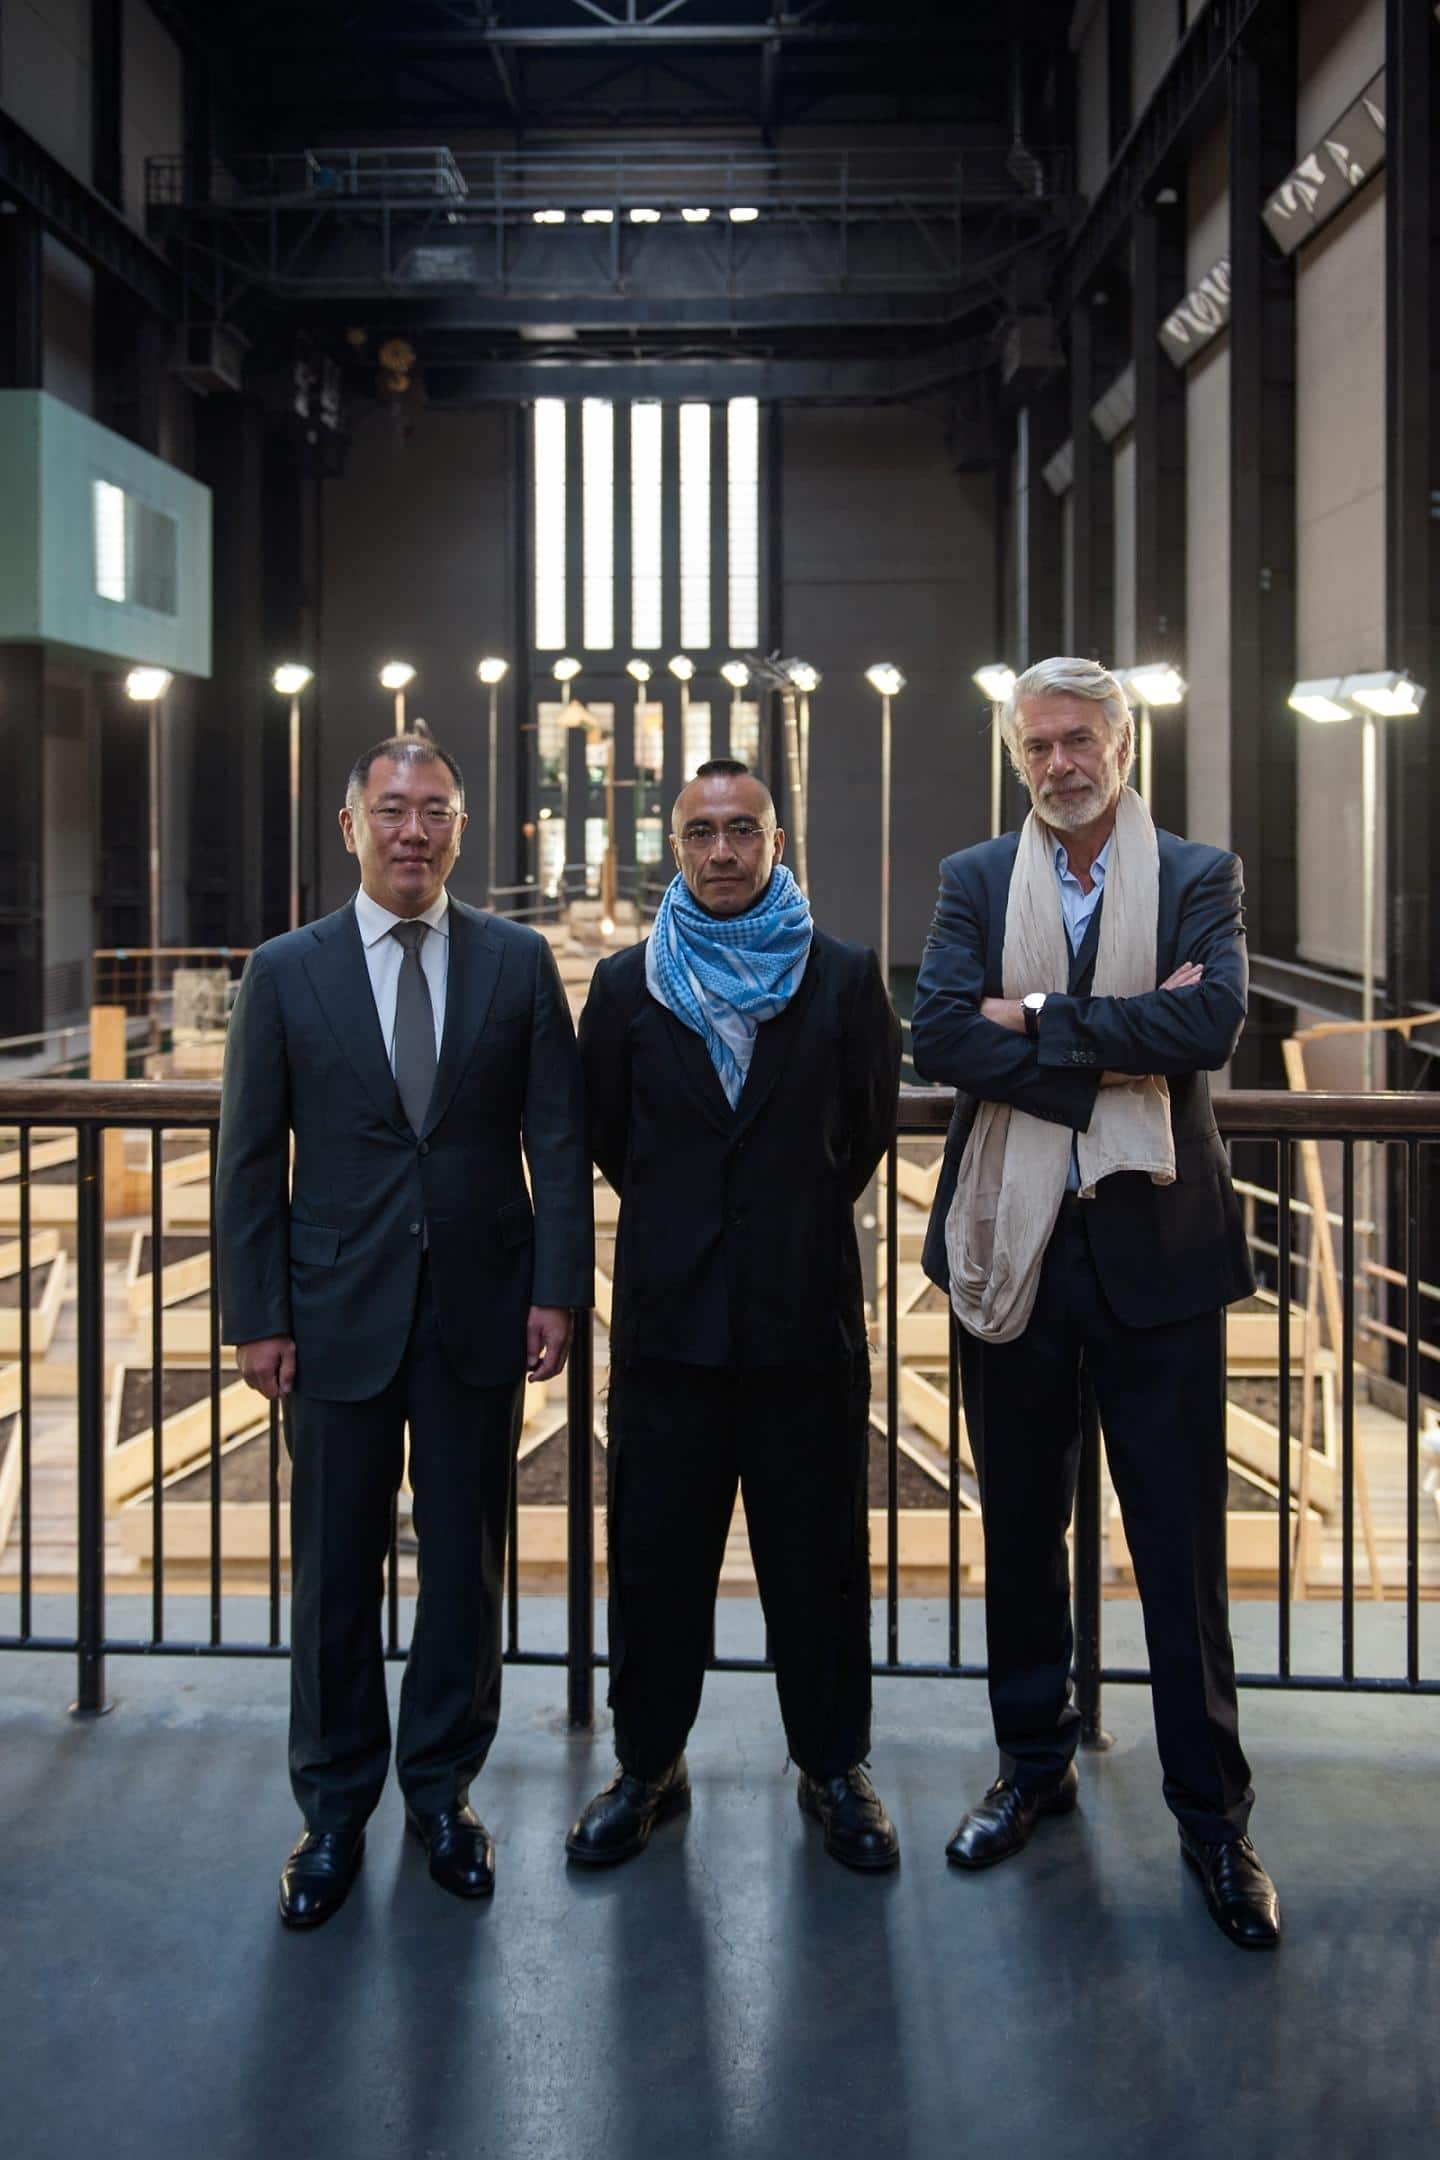 Hyundai Motor Announces the Opening of the Inaugural Hyundai Commission at Tate Modern (9)